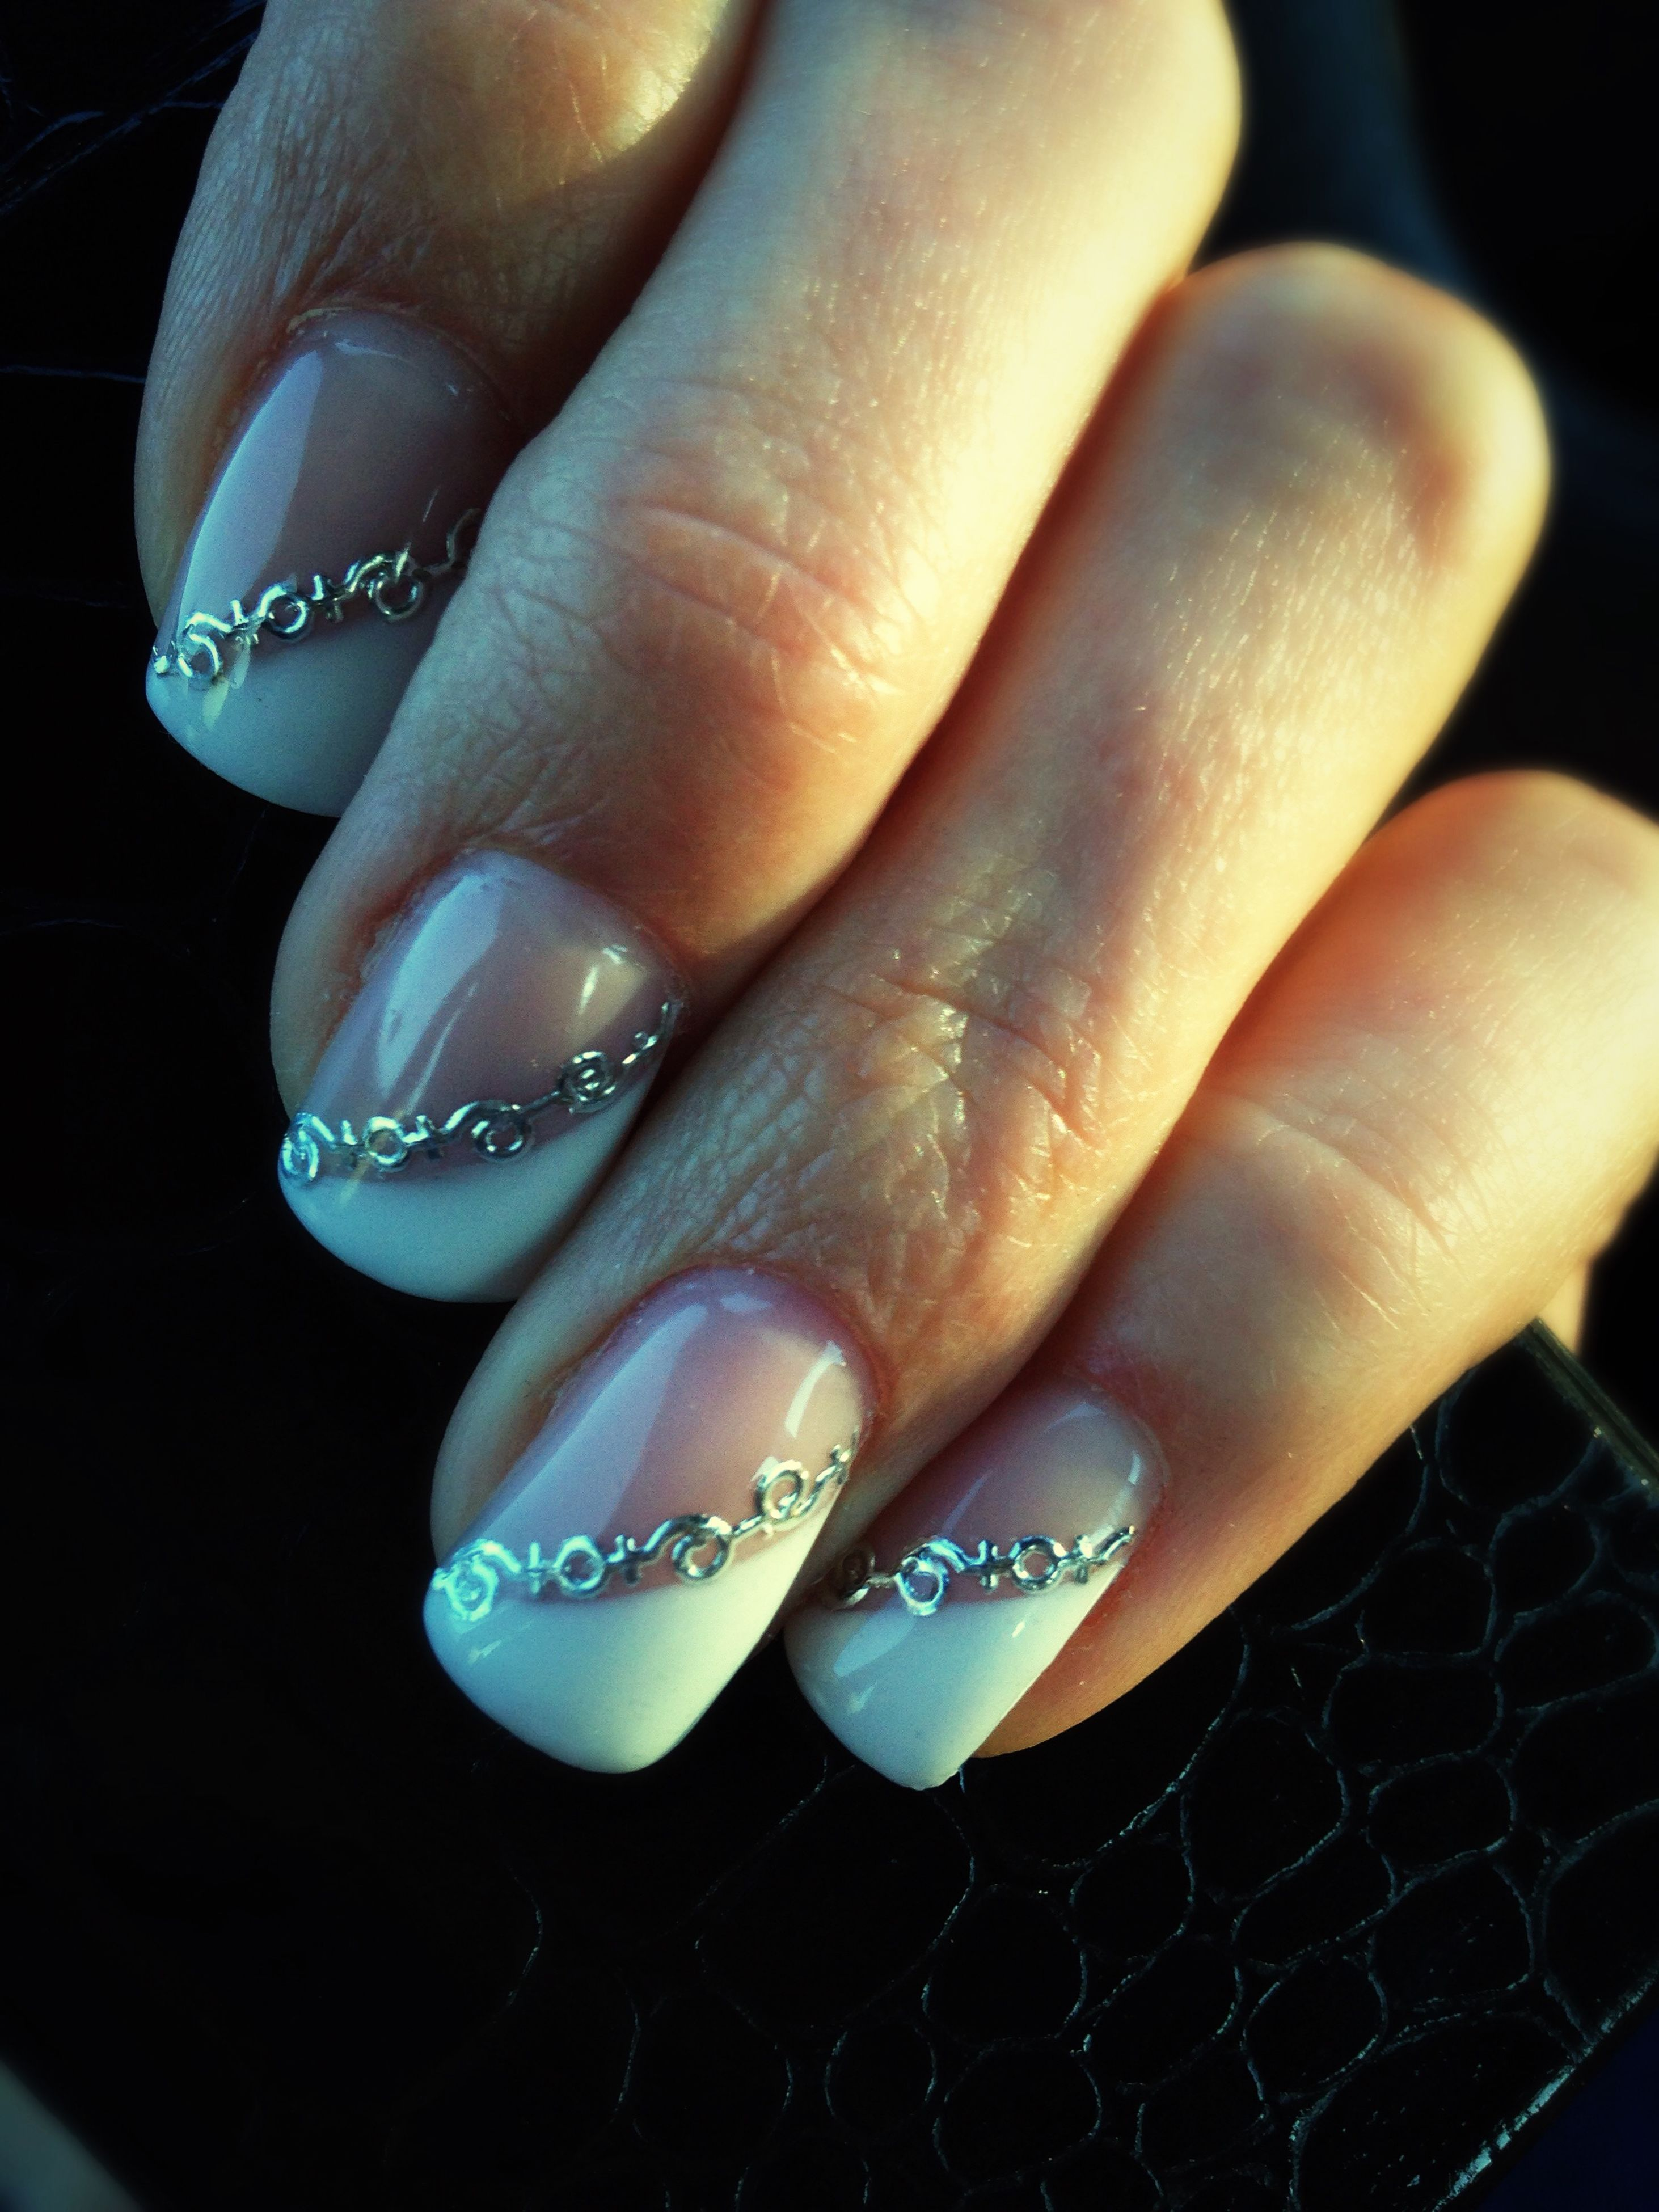 close-up, person, part of, indoors, black background, human finger, studio shot, cropped, focus on foreground, unrecognizable person, high angle view, detail, holding, ring, showing, pattern, still life